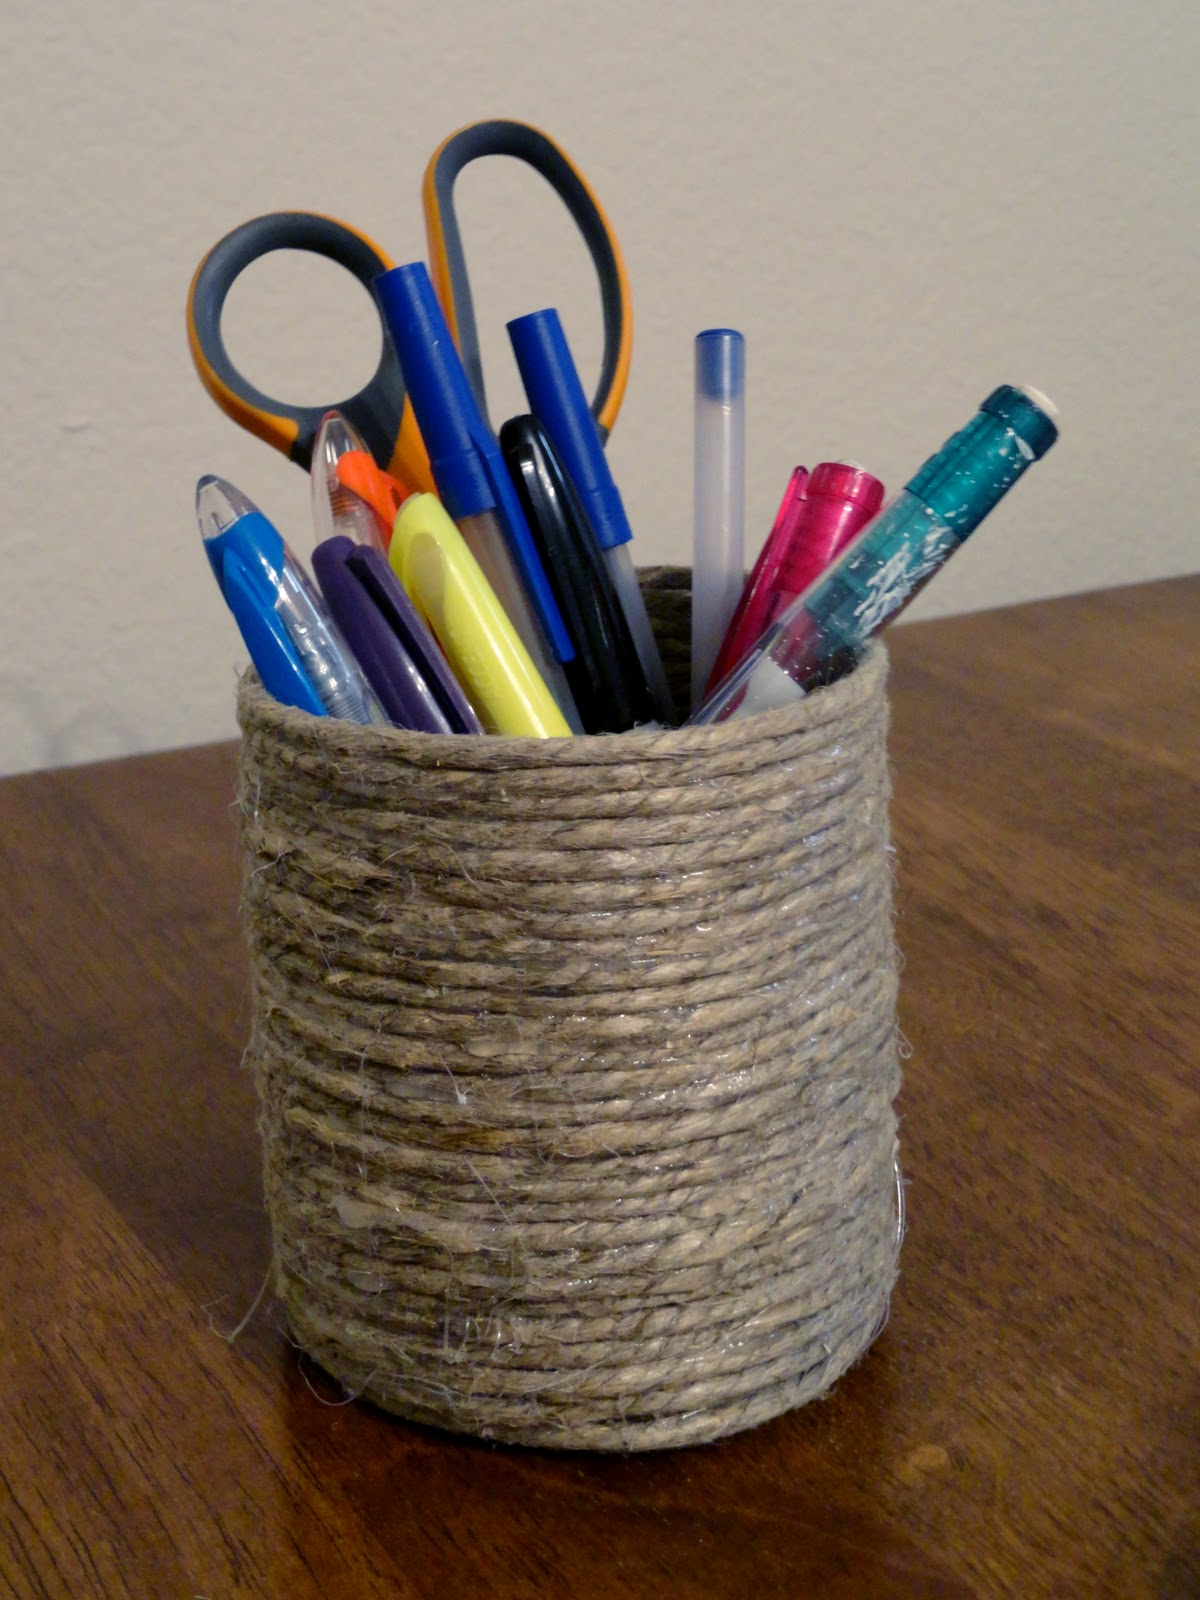 LET'S crEATe: Craft Tuesday: DIY Rope Pencil Holder